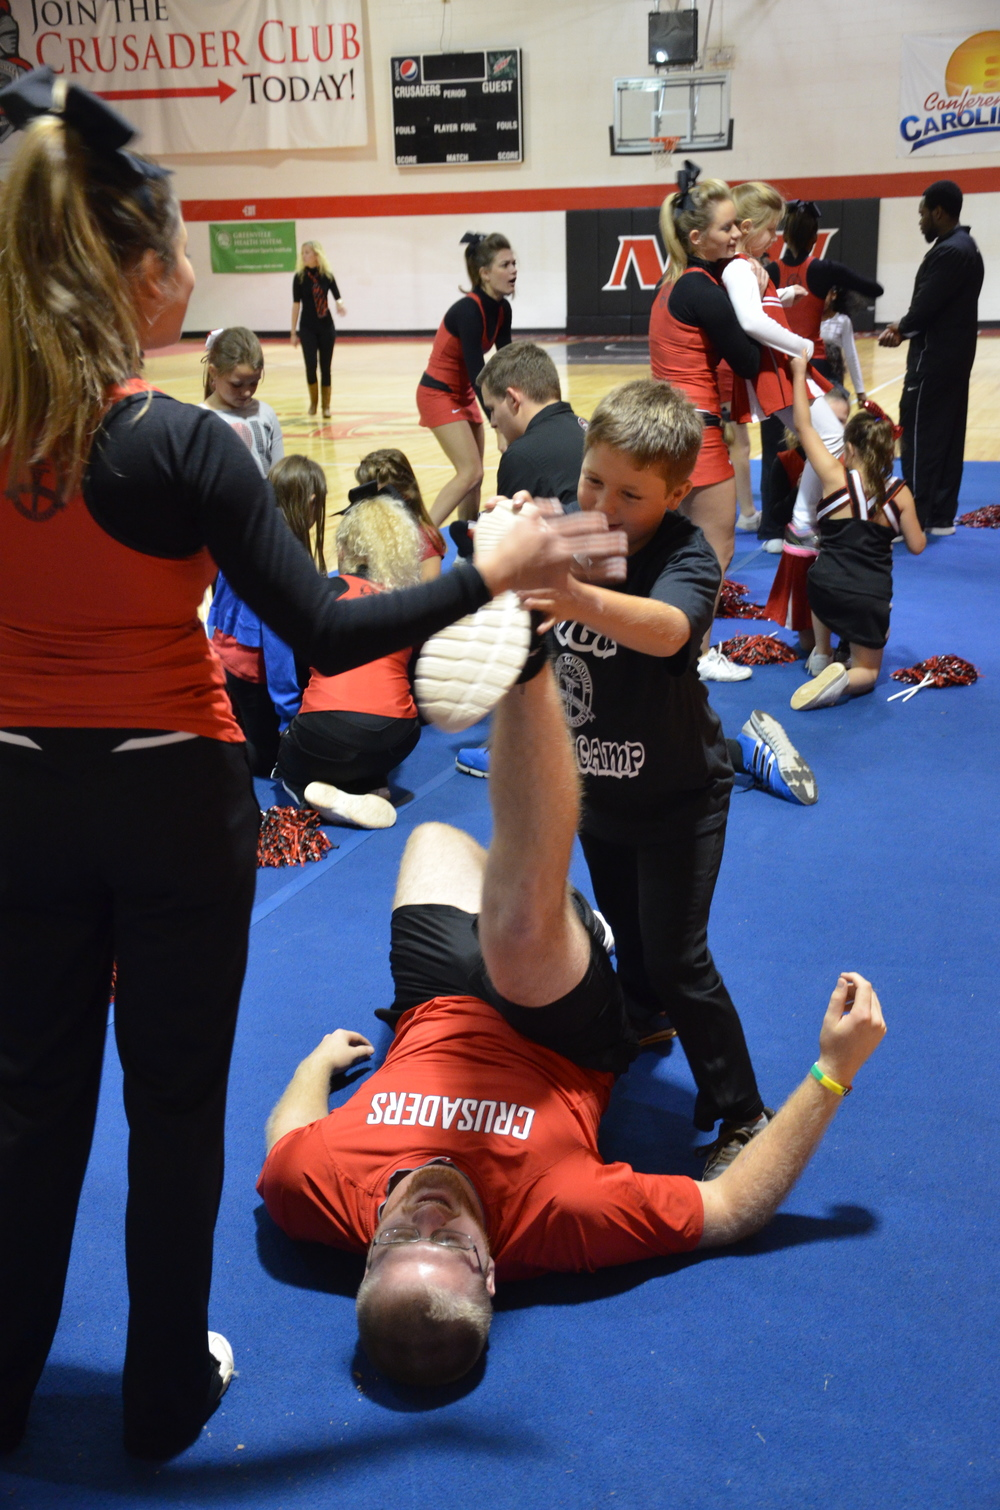 A big man needs a little help when it comes to stretching at NGU's cheer camp last weekend.